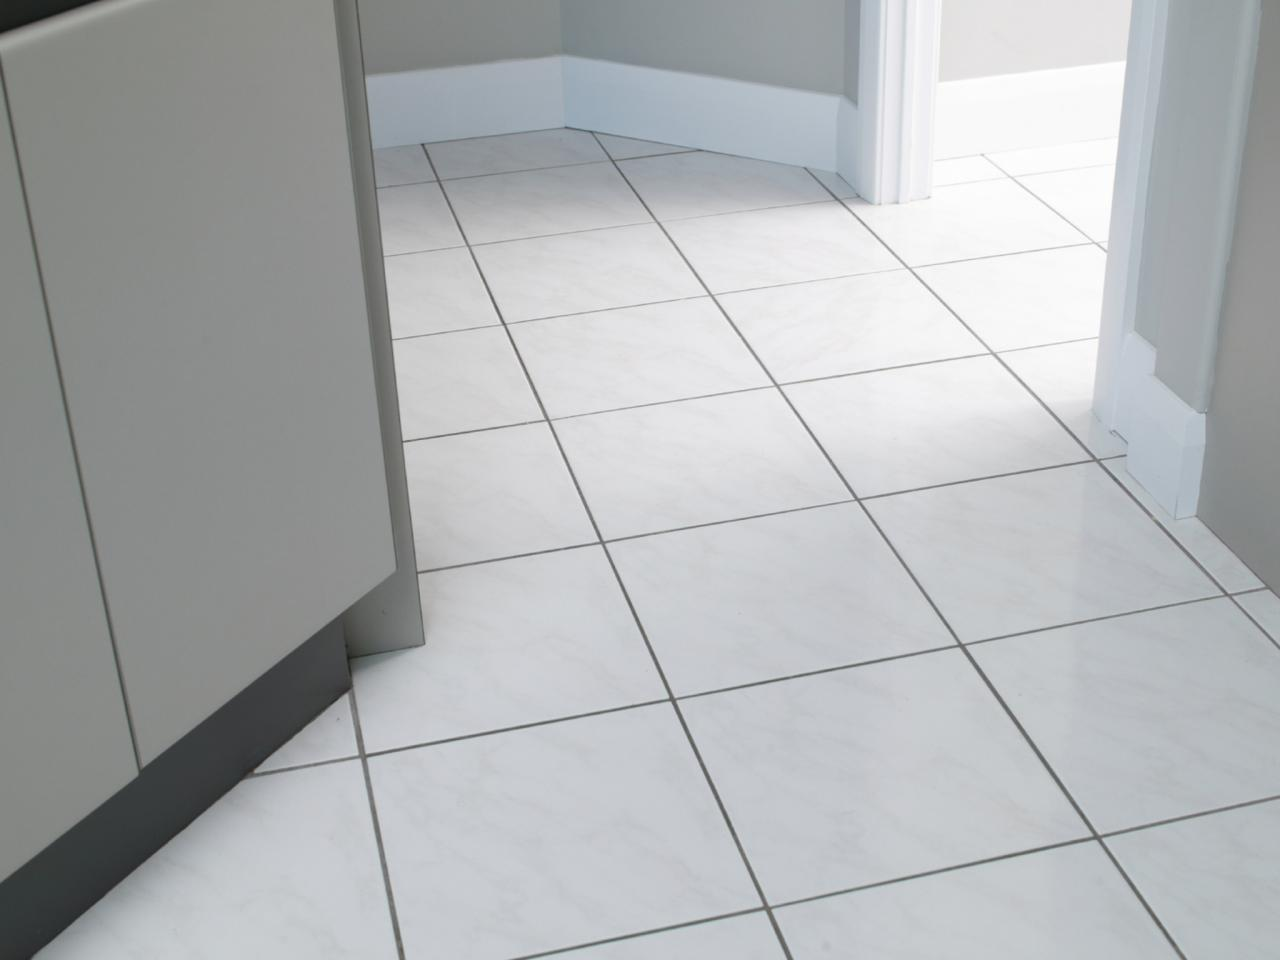 How to clean ceramic tile floors diy related to ceramic tile cleaning floors dailygadgetfo Gallery